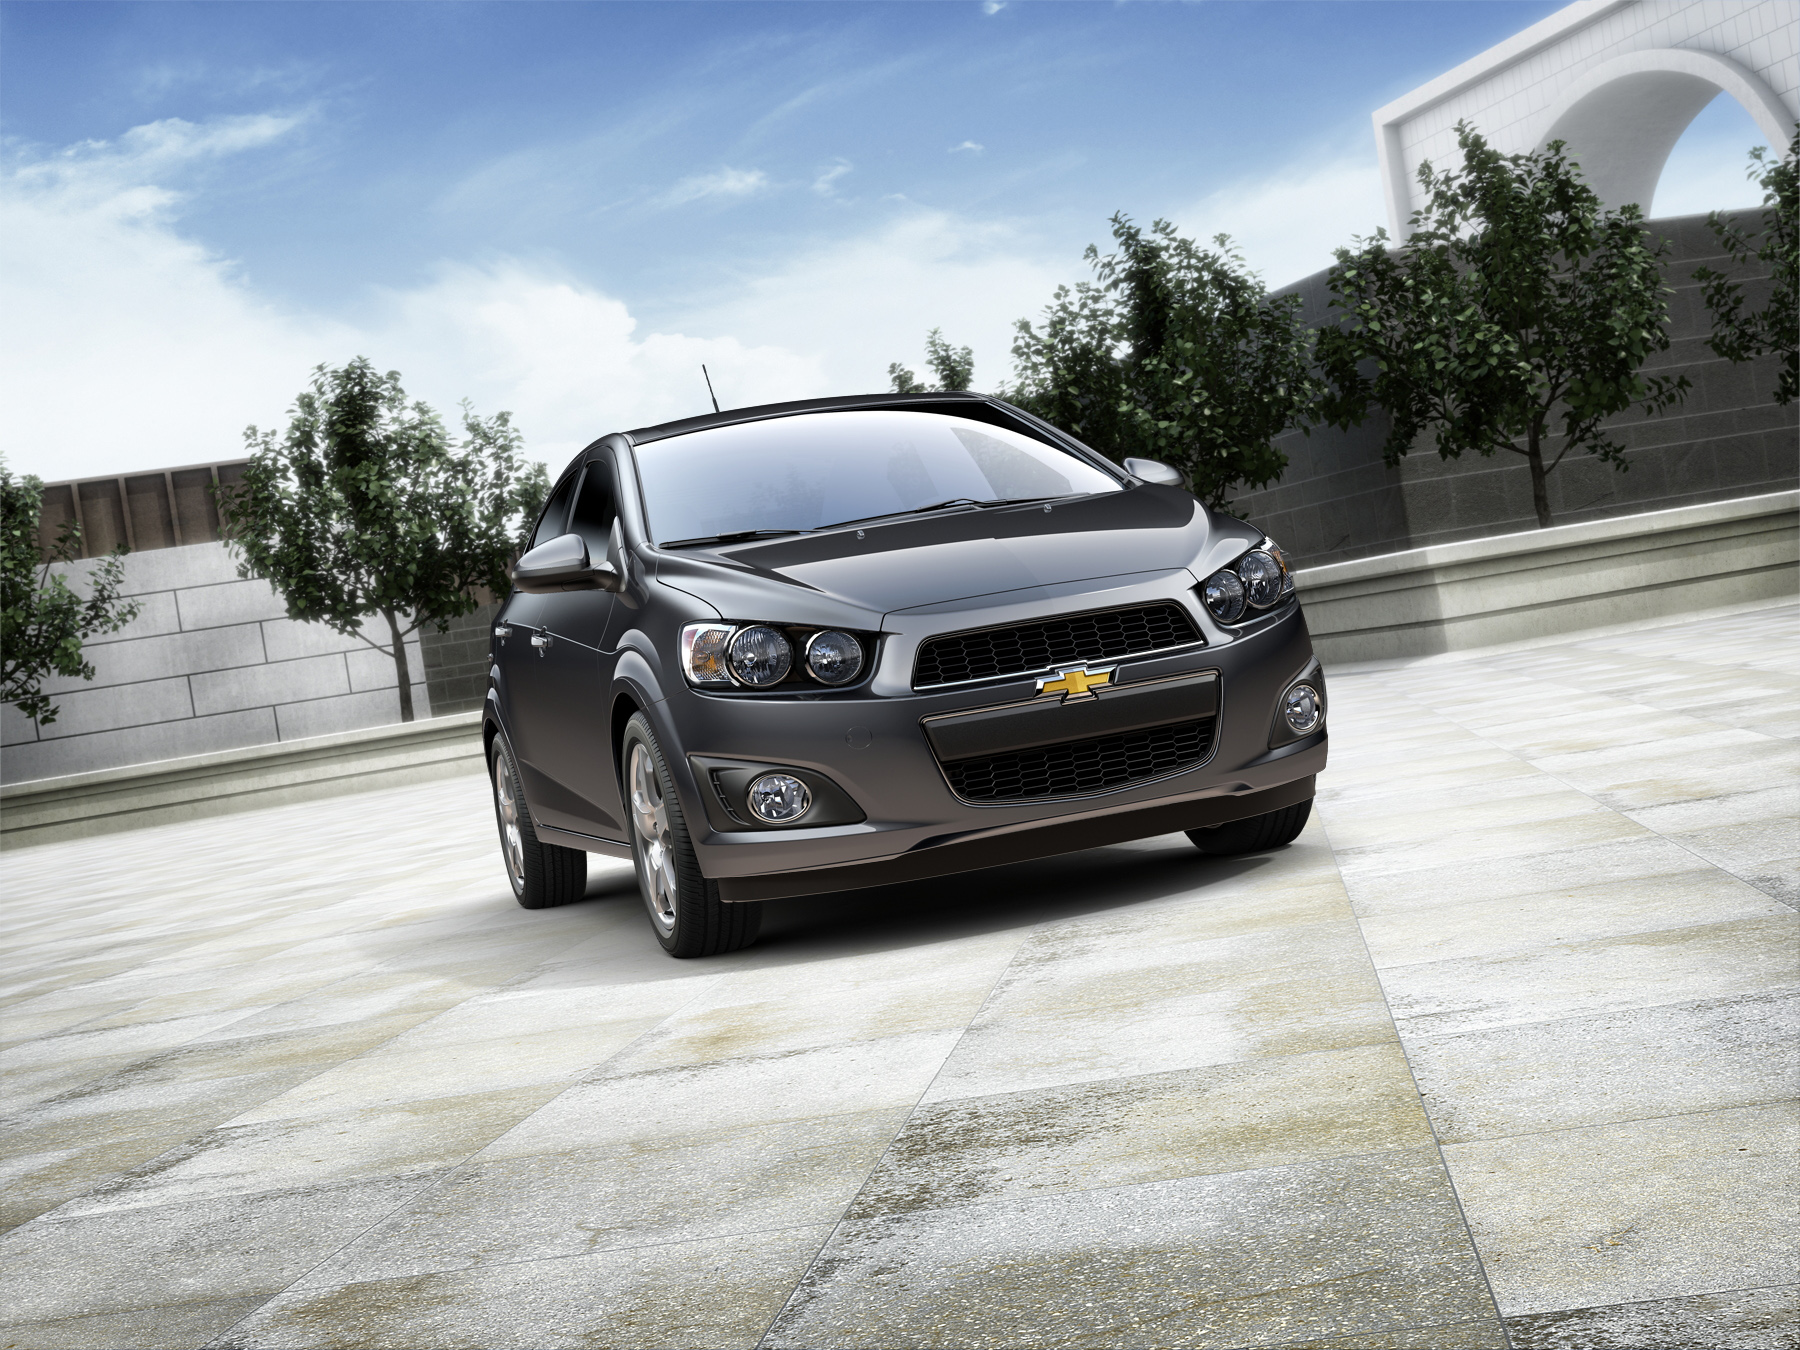 Chevrolet Sonic Owners Manual: Pairing with Touchscreen